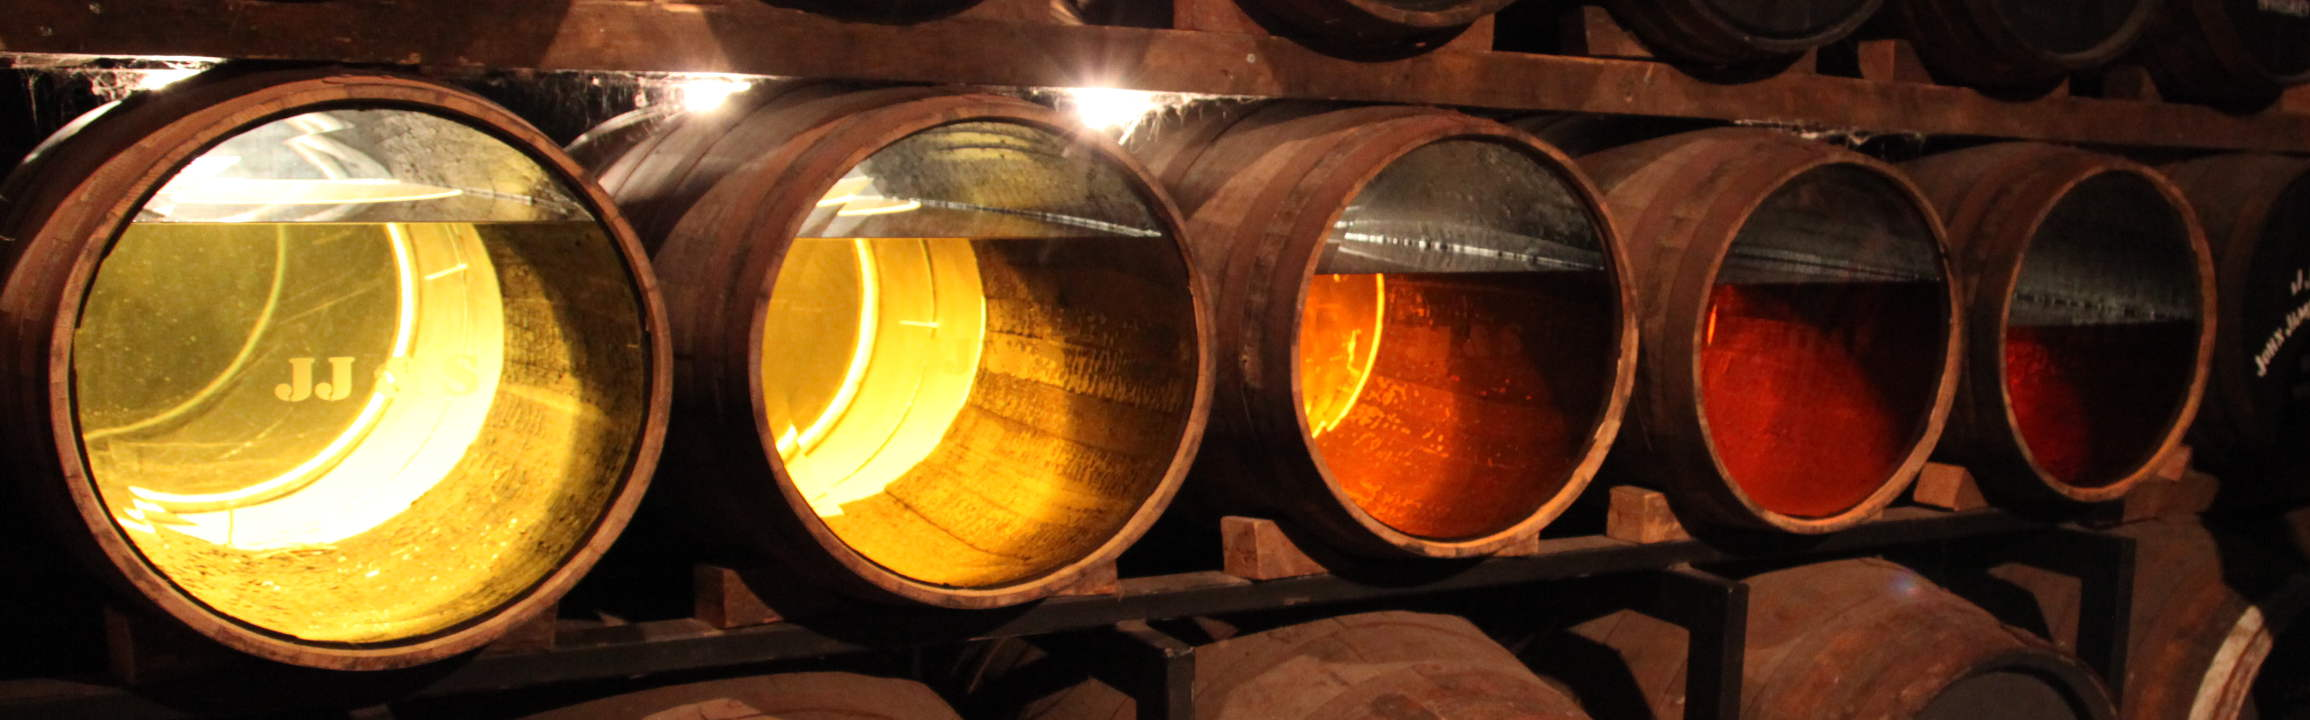 Barrels with aging whisky. Going from clear over yellow to a red wine colour